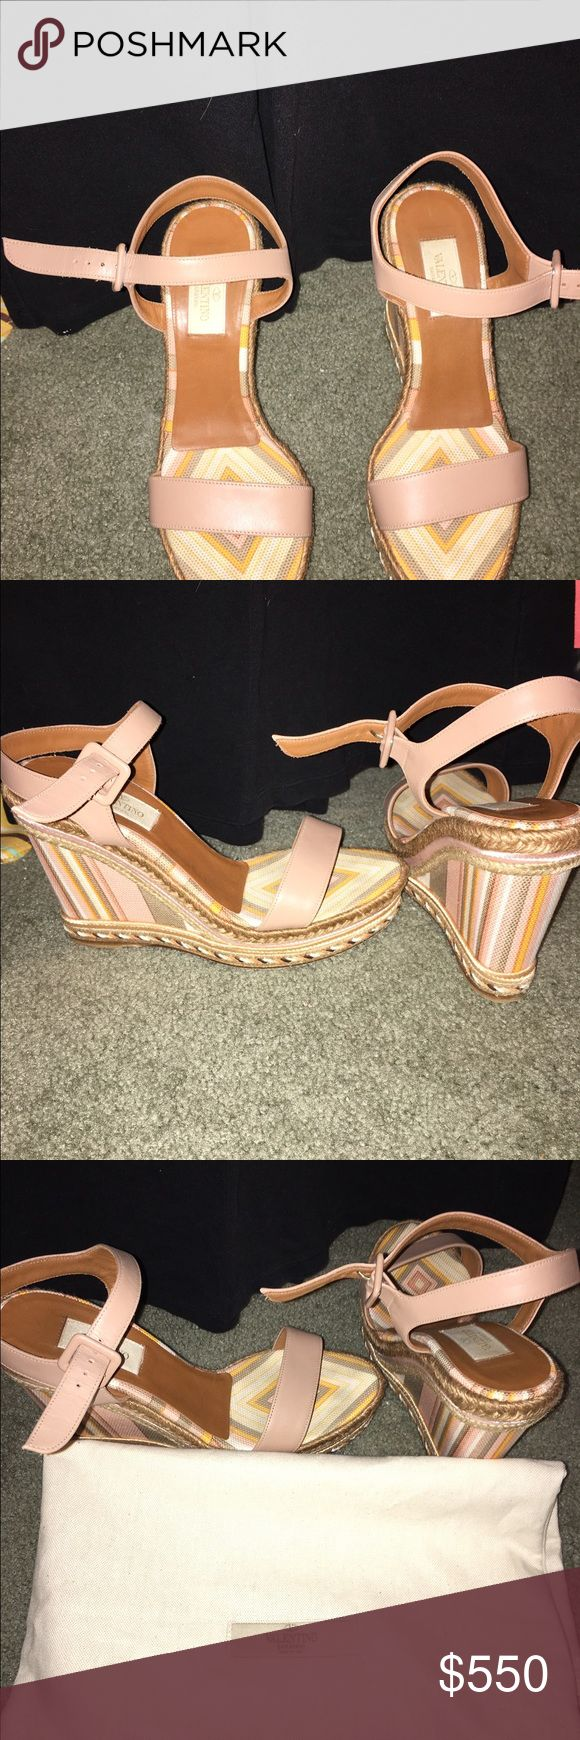 Valentino Wedges Gorgeous Valentino wedges in neutral colors Valentino Shoes Wedges